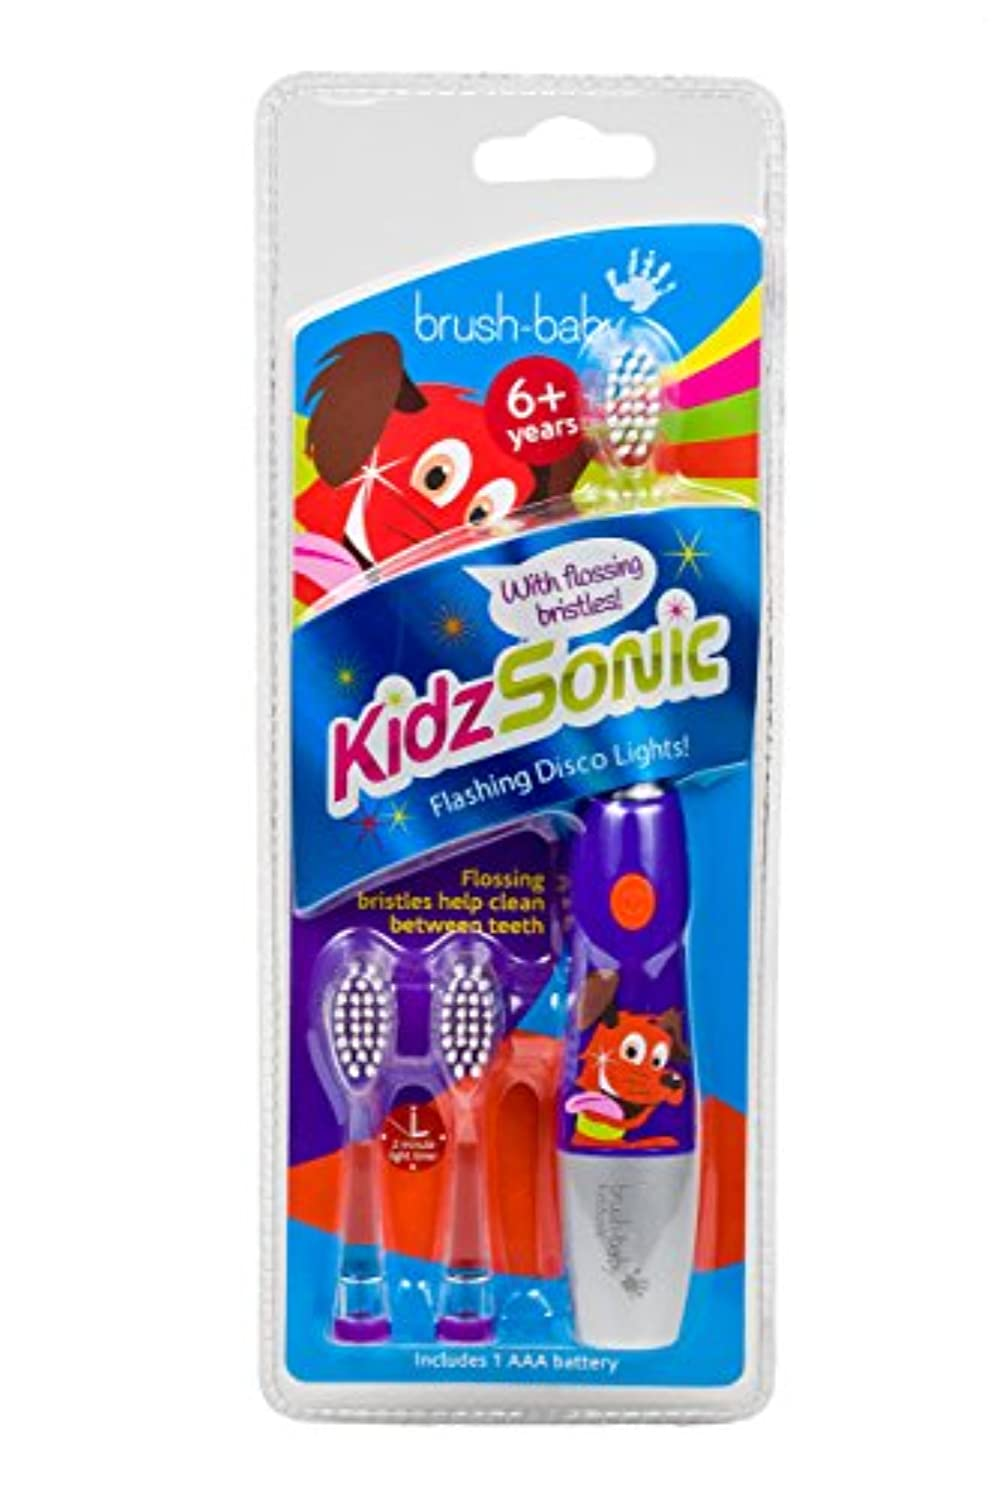 遊びます受け入れた反論者Brush-Baby KidzSonic Electric Toothbrush 6+ years with flashing disco lights PURPLE - ブラシ - ベイビーKidzSonic電動歯ブラシ...